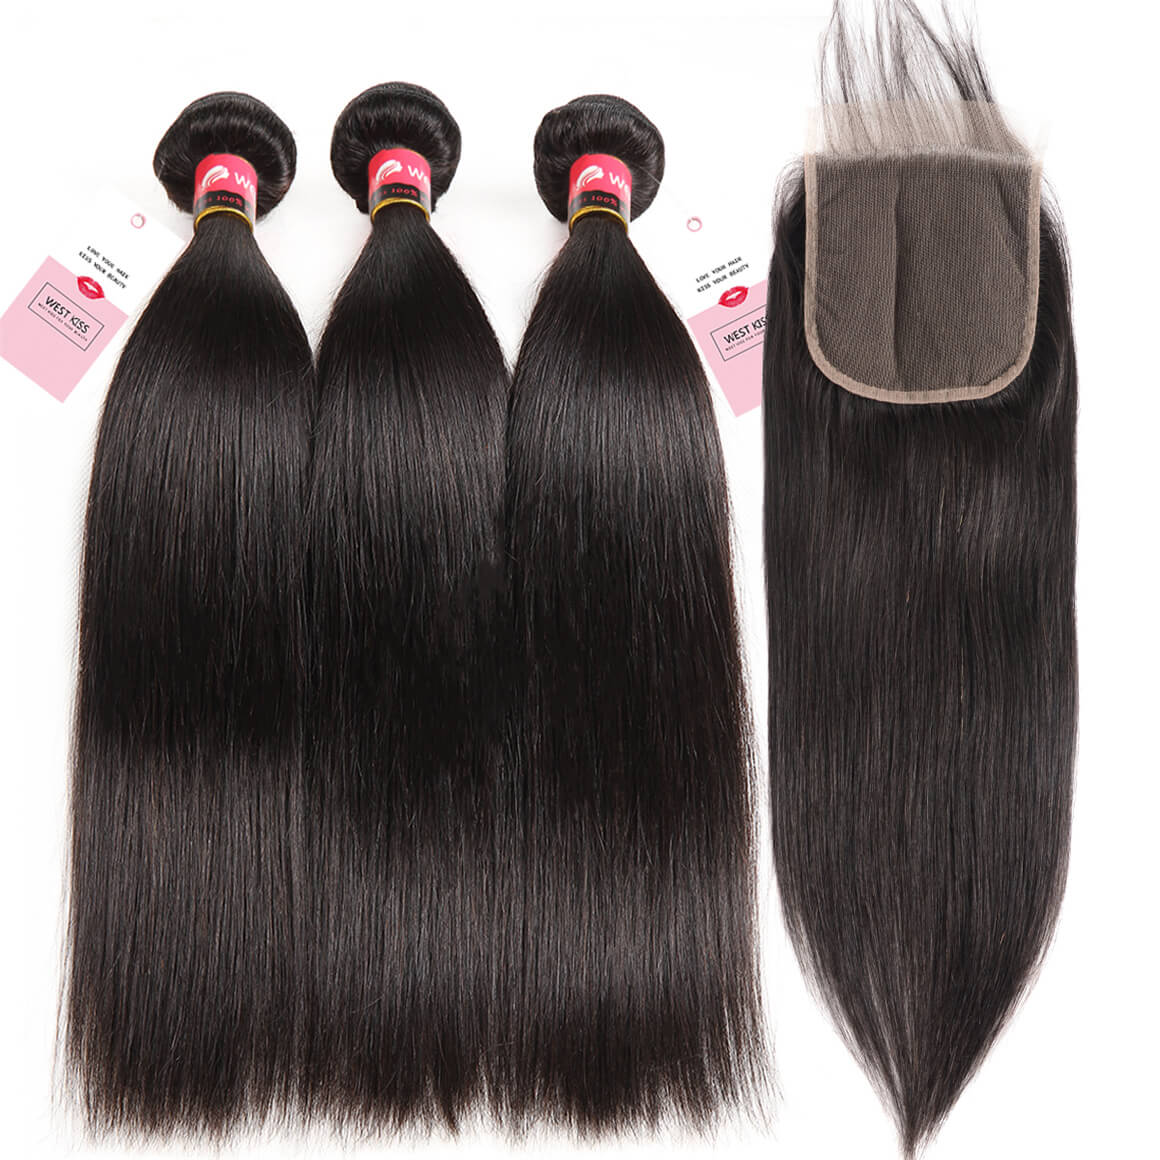 Straight Human Hair 3 Bundles